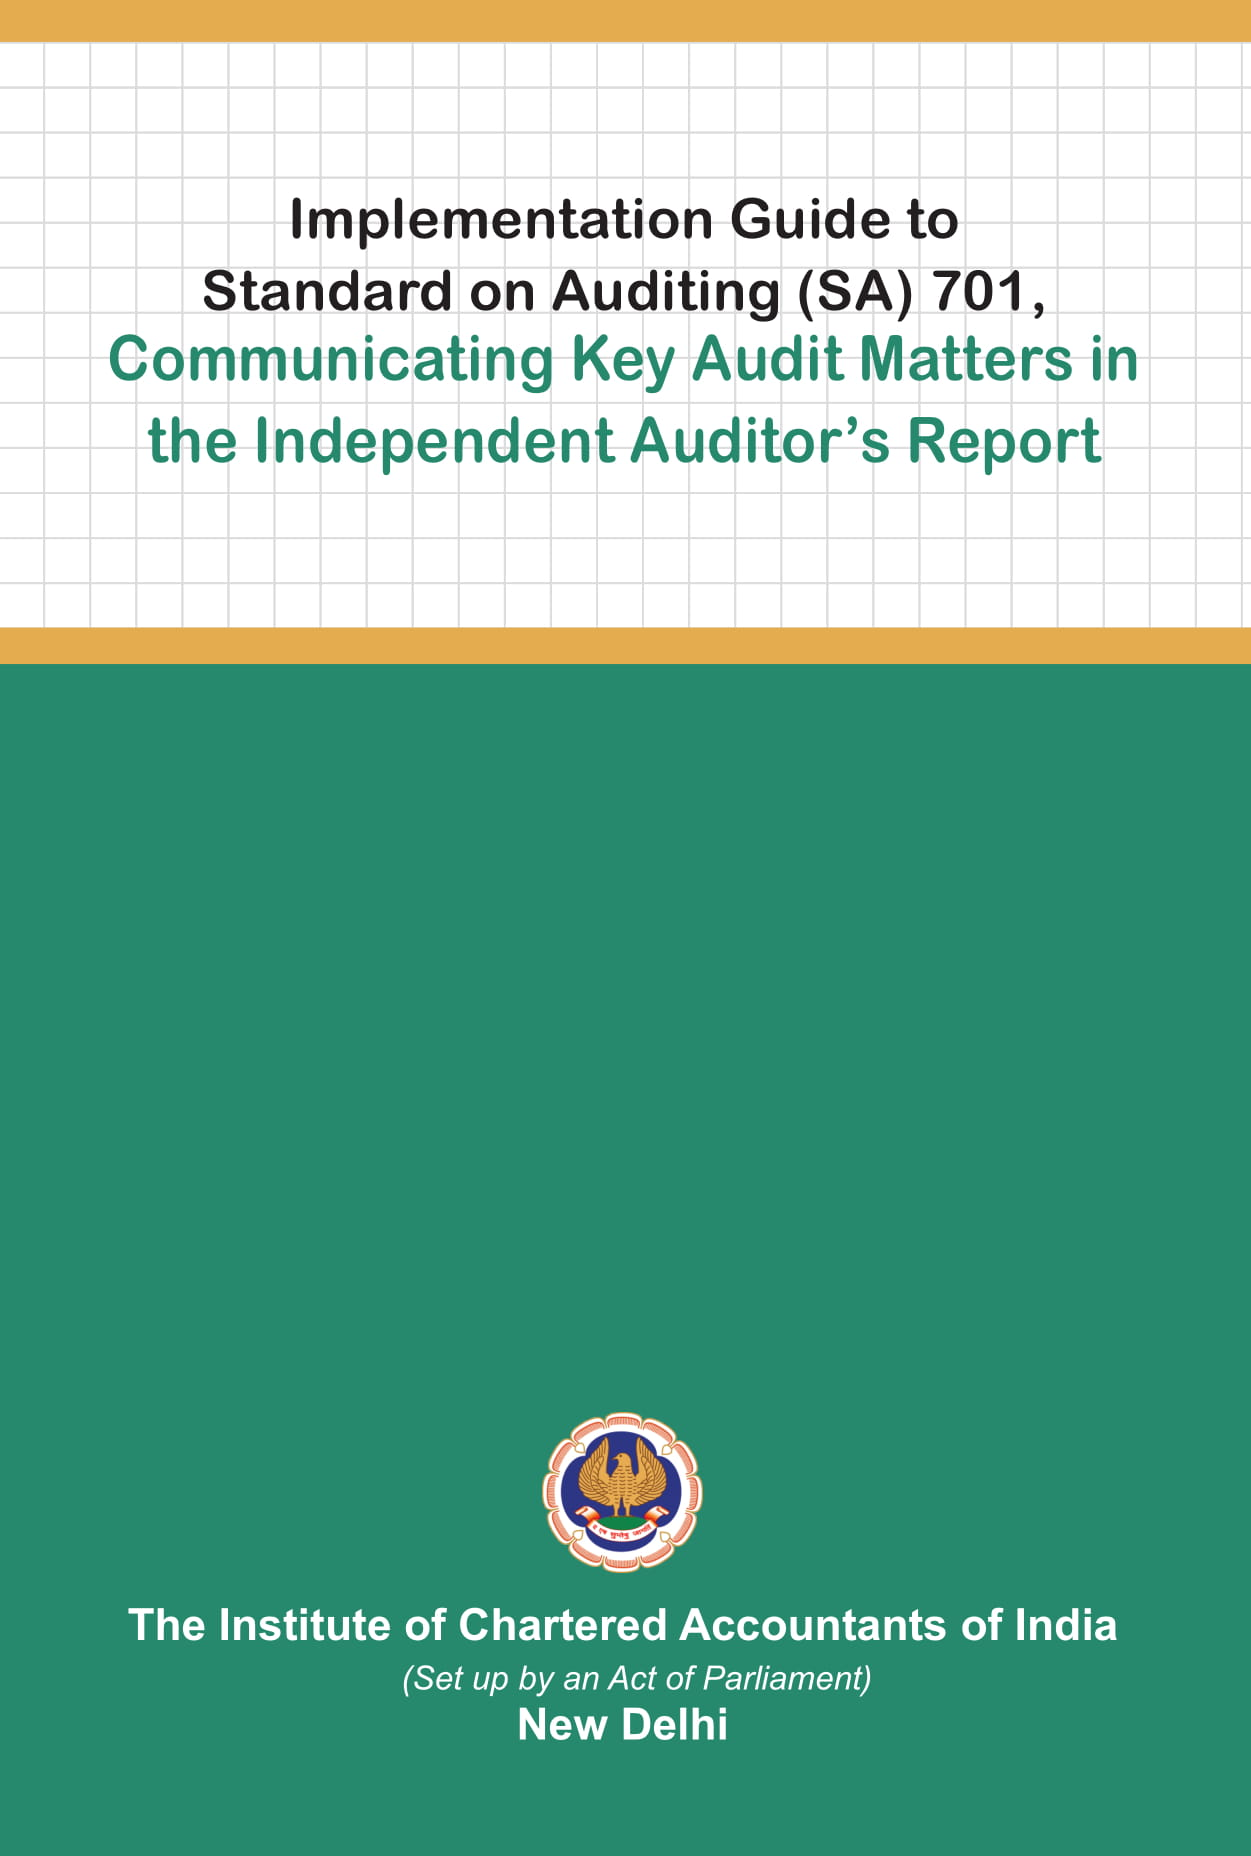 Implementation Guide to Standard on Auditing (SA) 701, Communicating Key Audit Matters in the Independent Auditor's Reports (August, 2018)